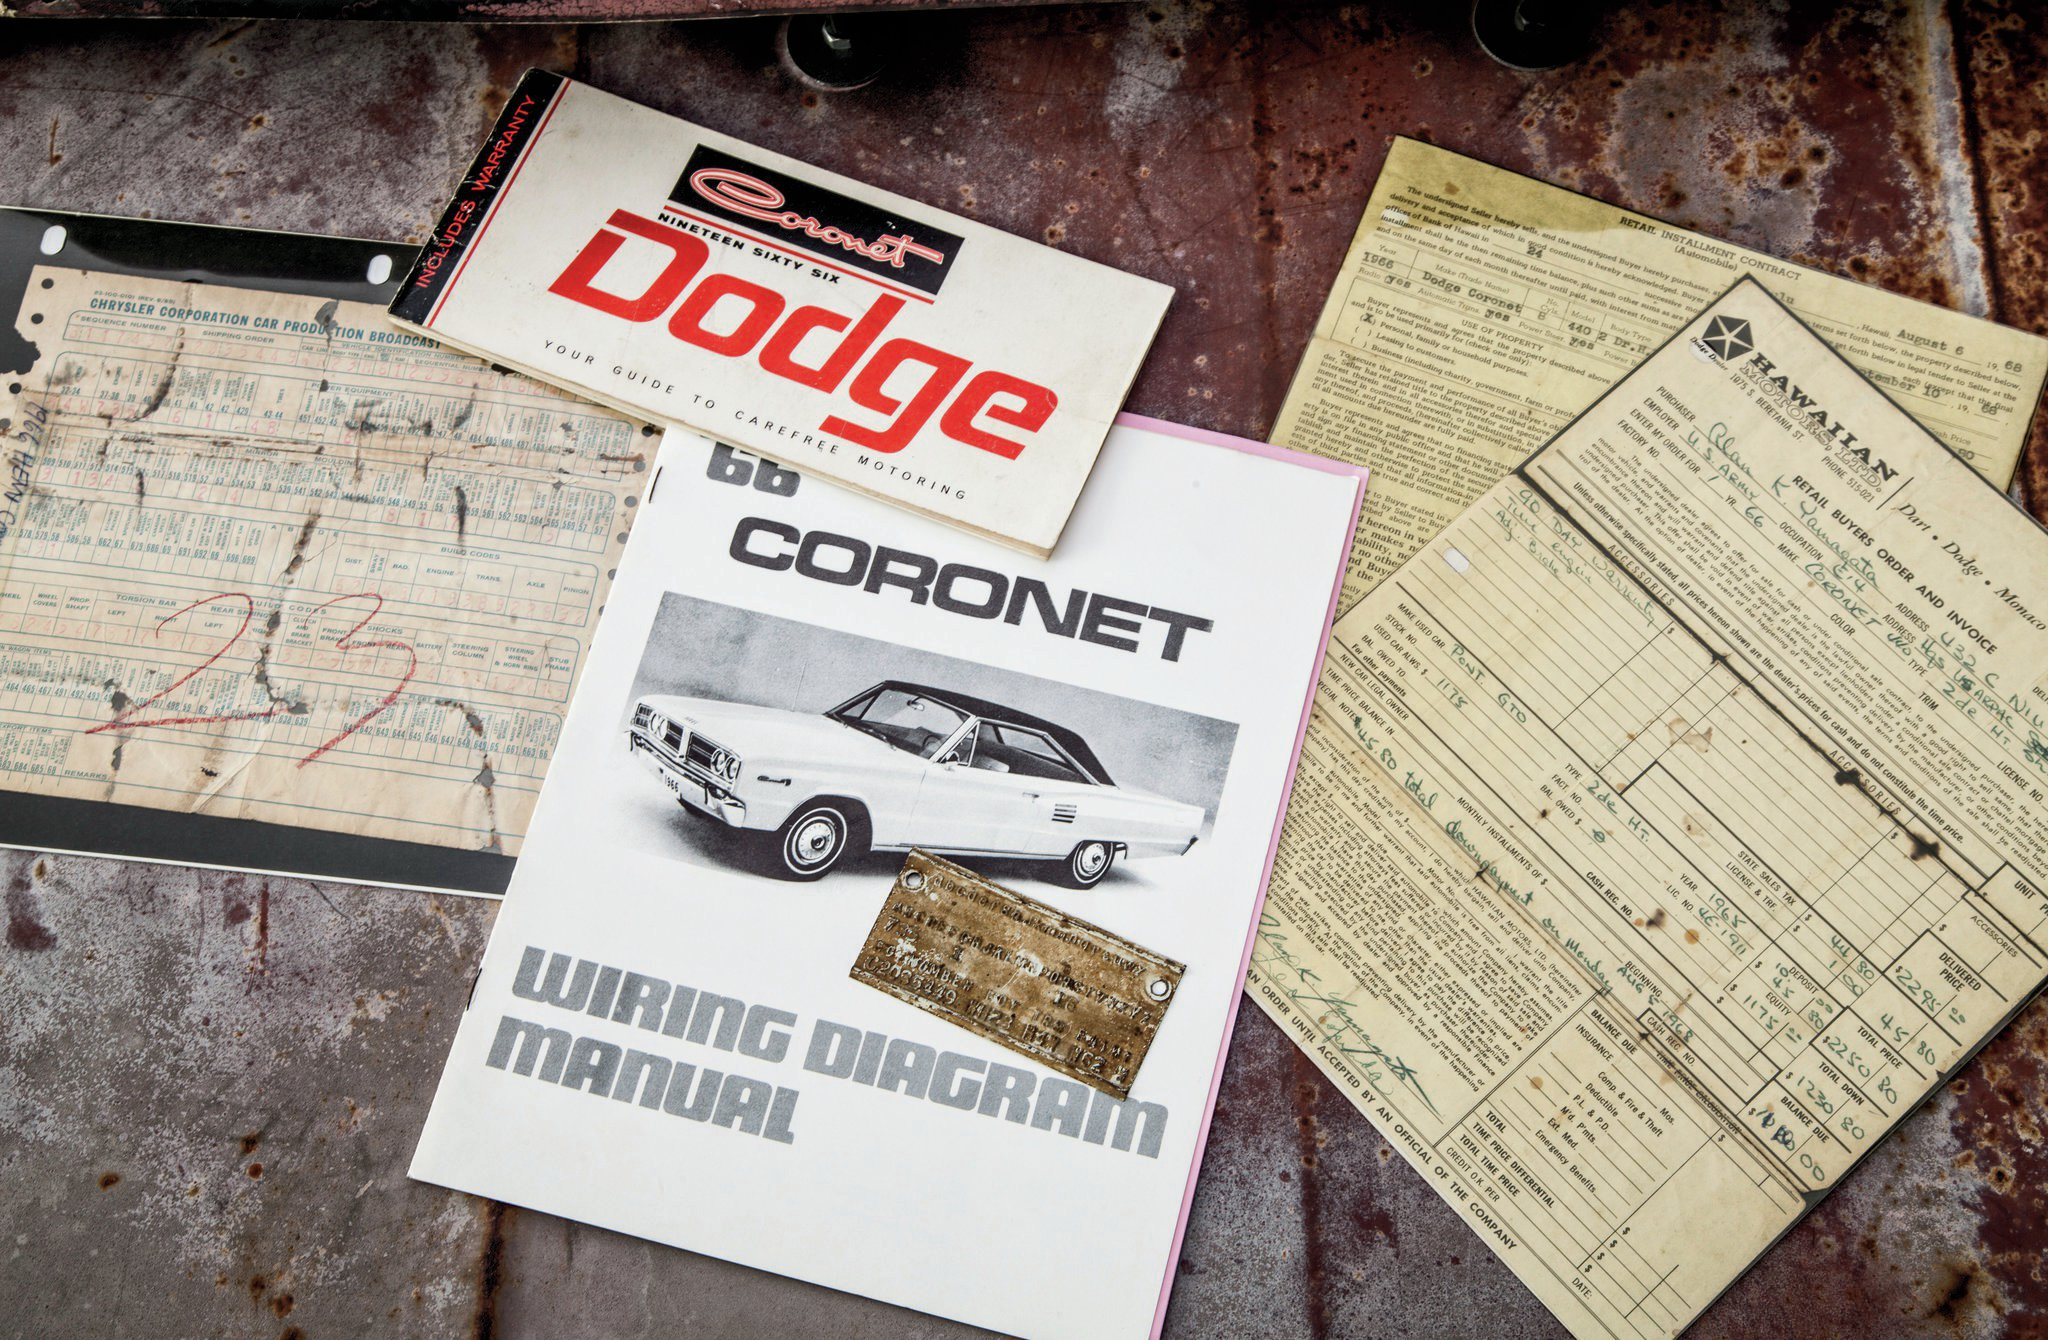 The previous owner also had a stock of original paperwork for the Coronet, including the original sale invoice showing a delivery price of $2,295. A '65 GTO was traded in as part of the deal.